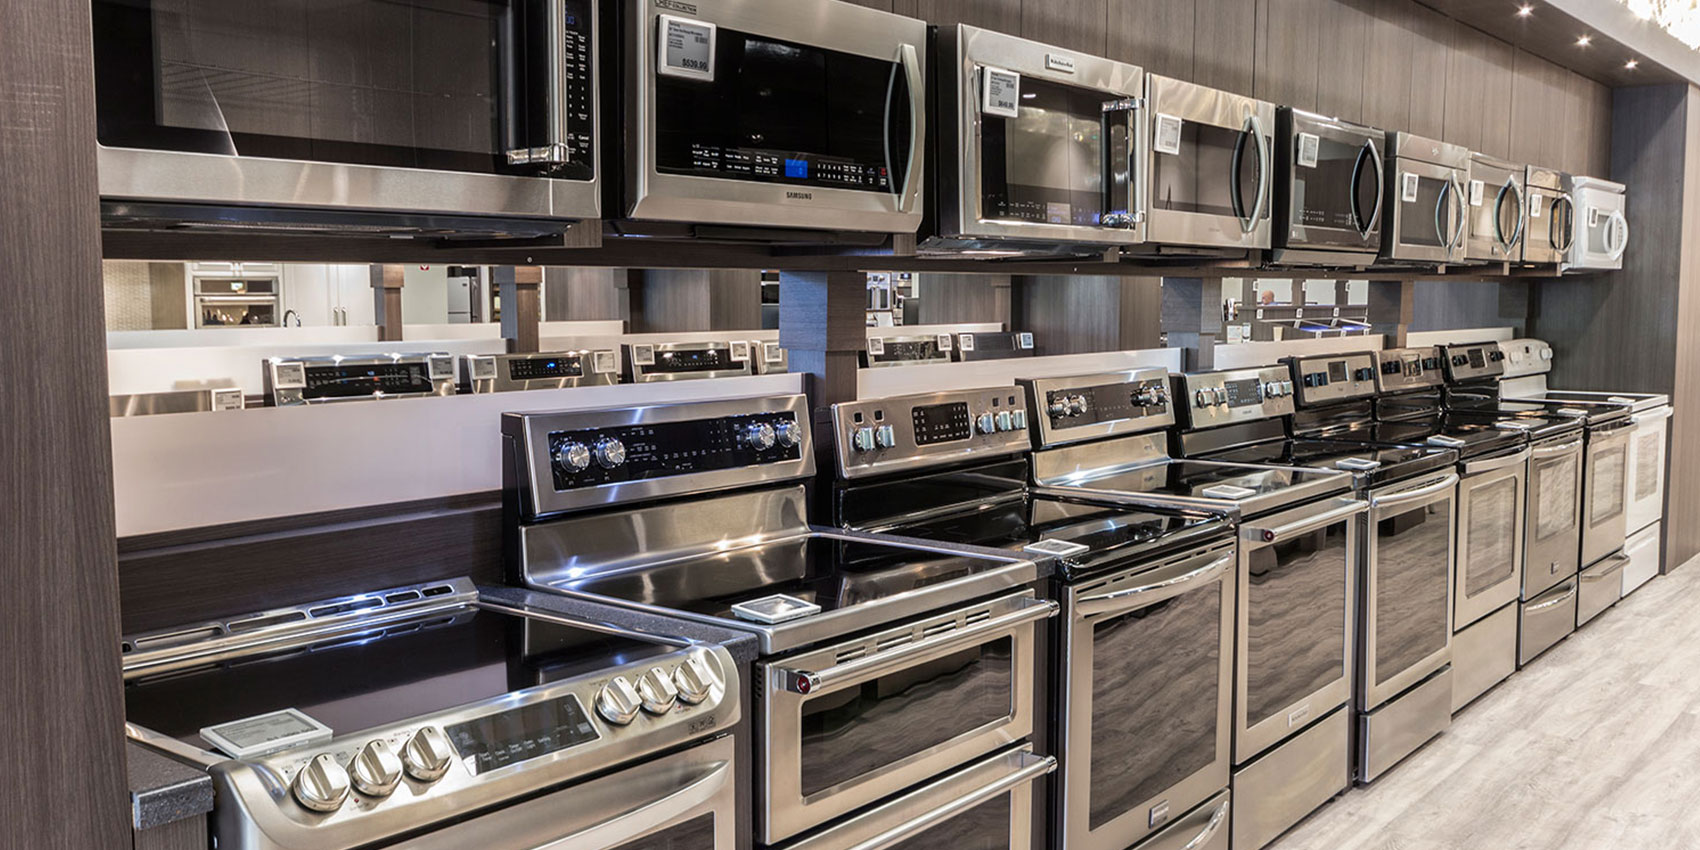 Appliance Application - My Ideal Home